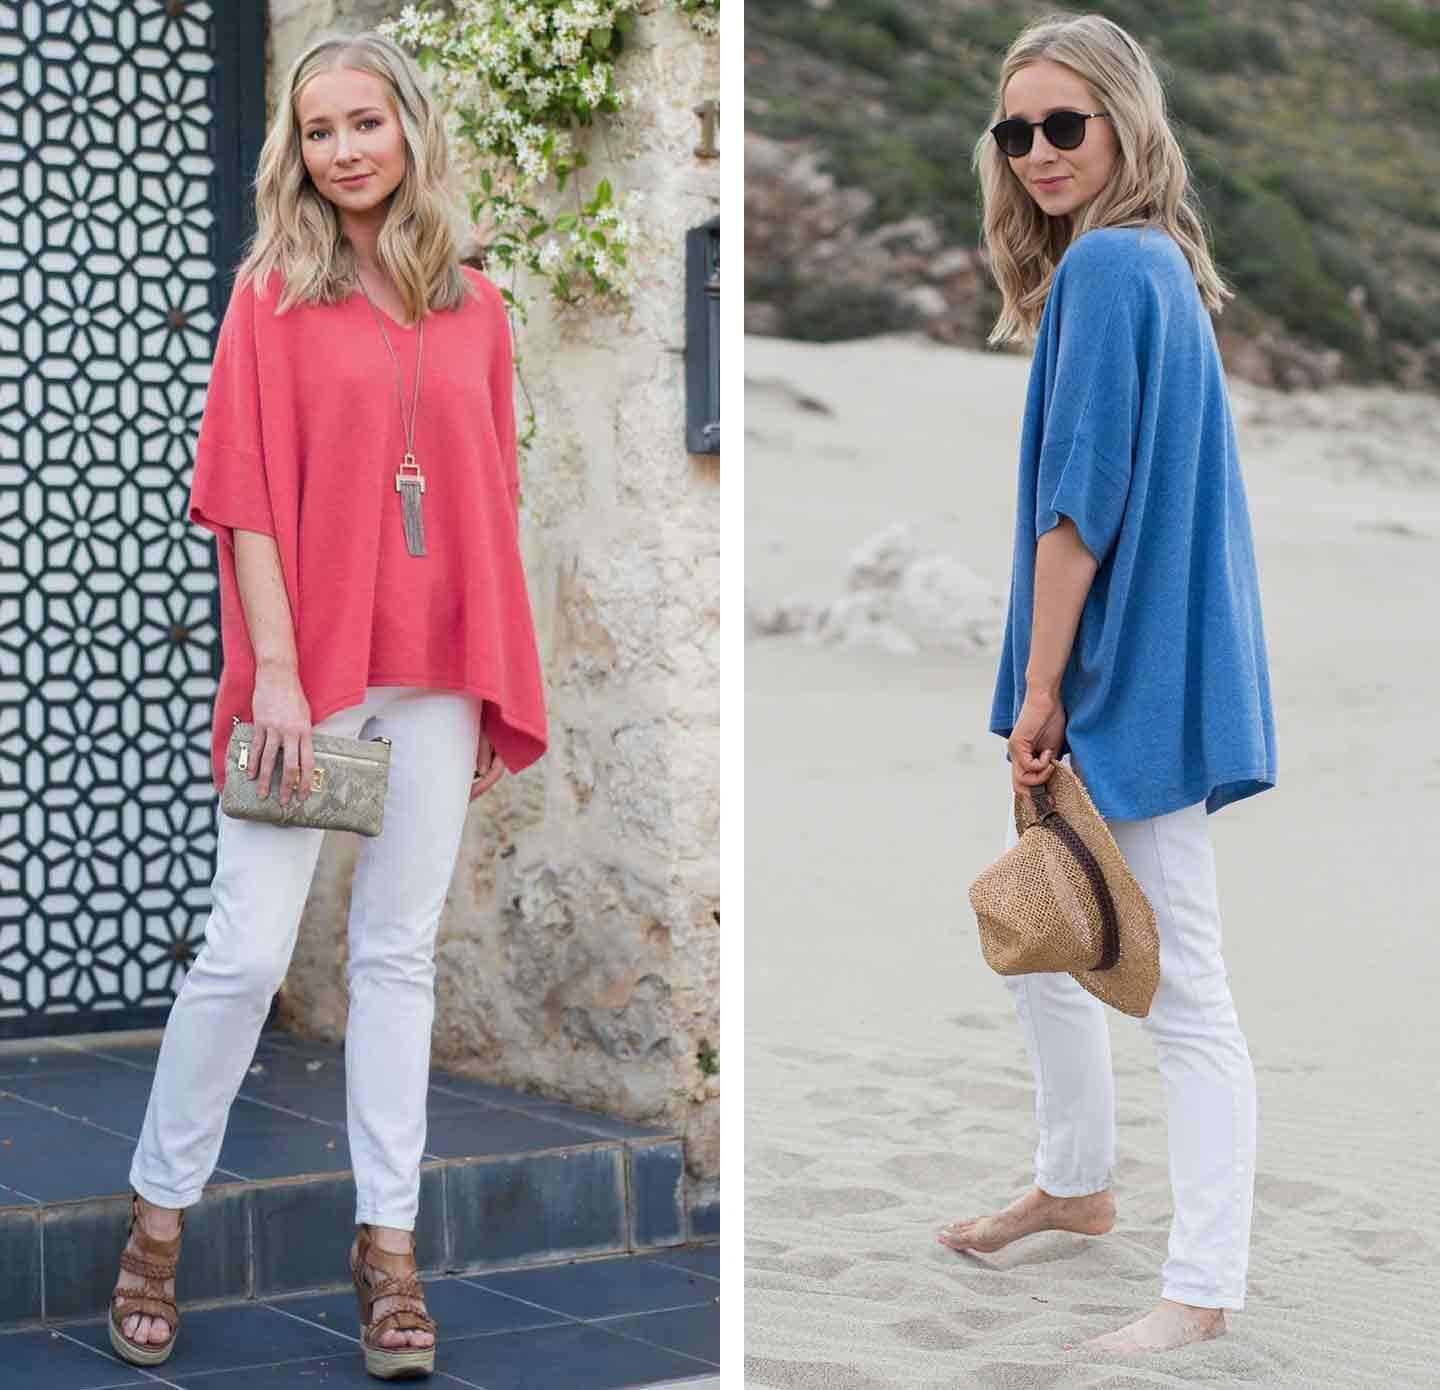 One-woman-standing-infront-of-a-blue-door-on-a-step-wearing-a-pink-cashmere-jumper-with-white-jeans-wedges-and-handbag-and-another-image-of-a-woman-on-a-beach-in-blue-kimono-jumper-